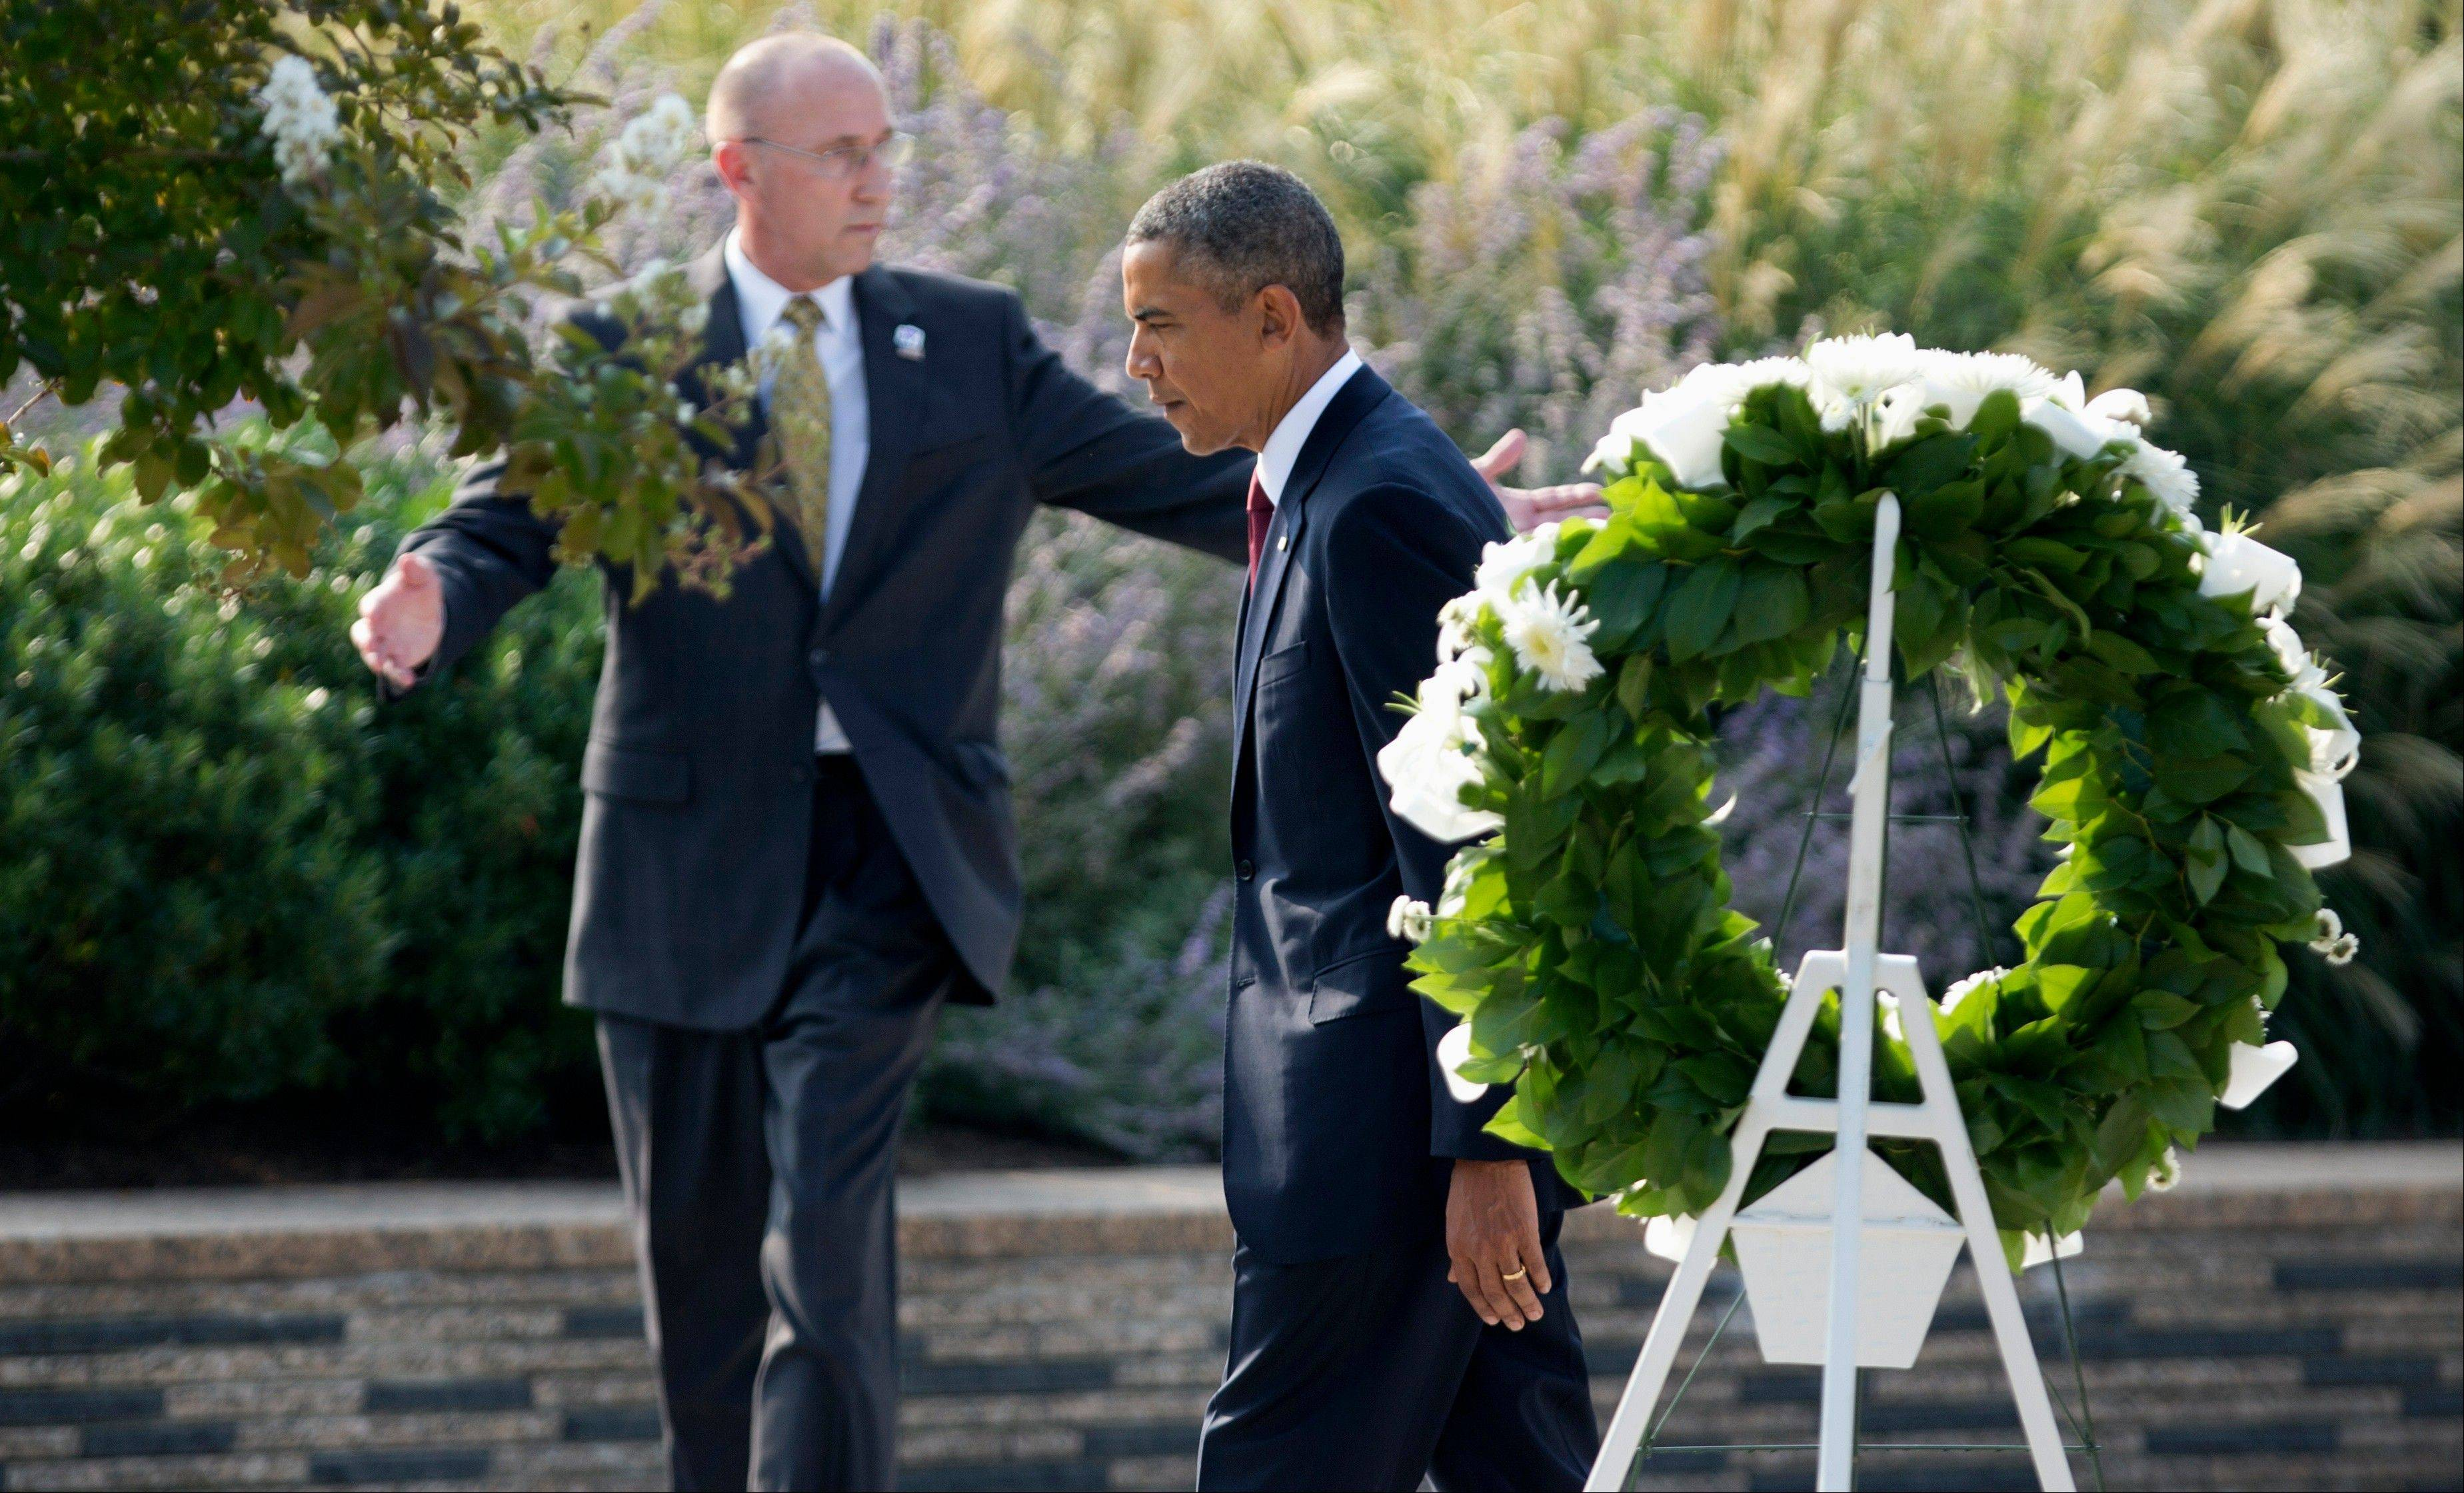 President Barack Obama leaves after laying a wreath at the Pentagon, during a ceremony marking the 12th anniversary of the worst terror attack on the US. The Pentagon was struck by one of the hijacked plane.